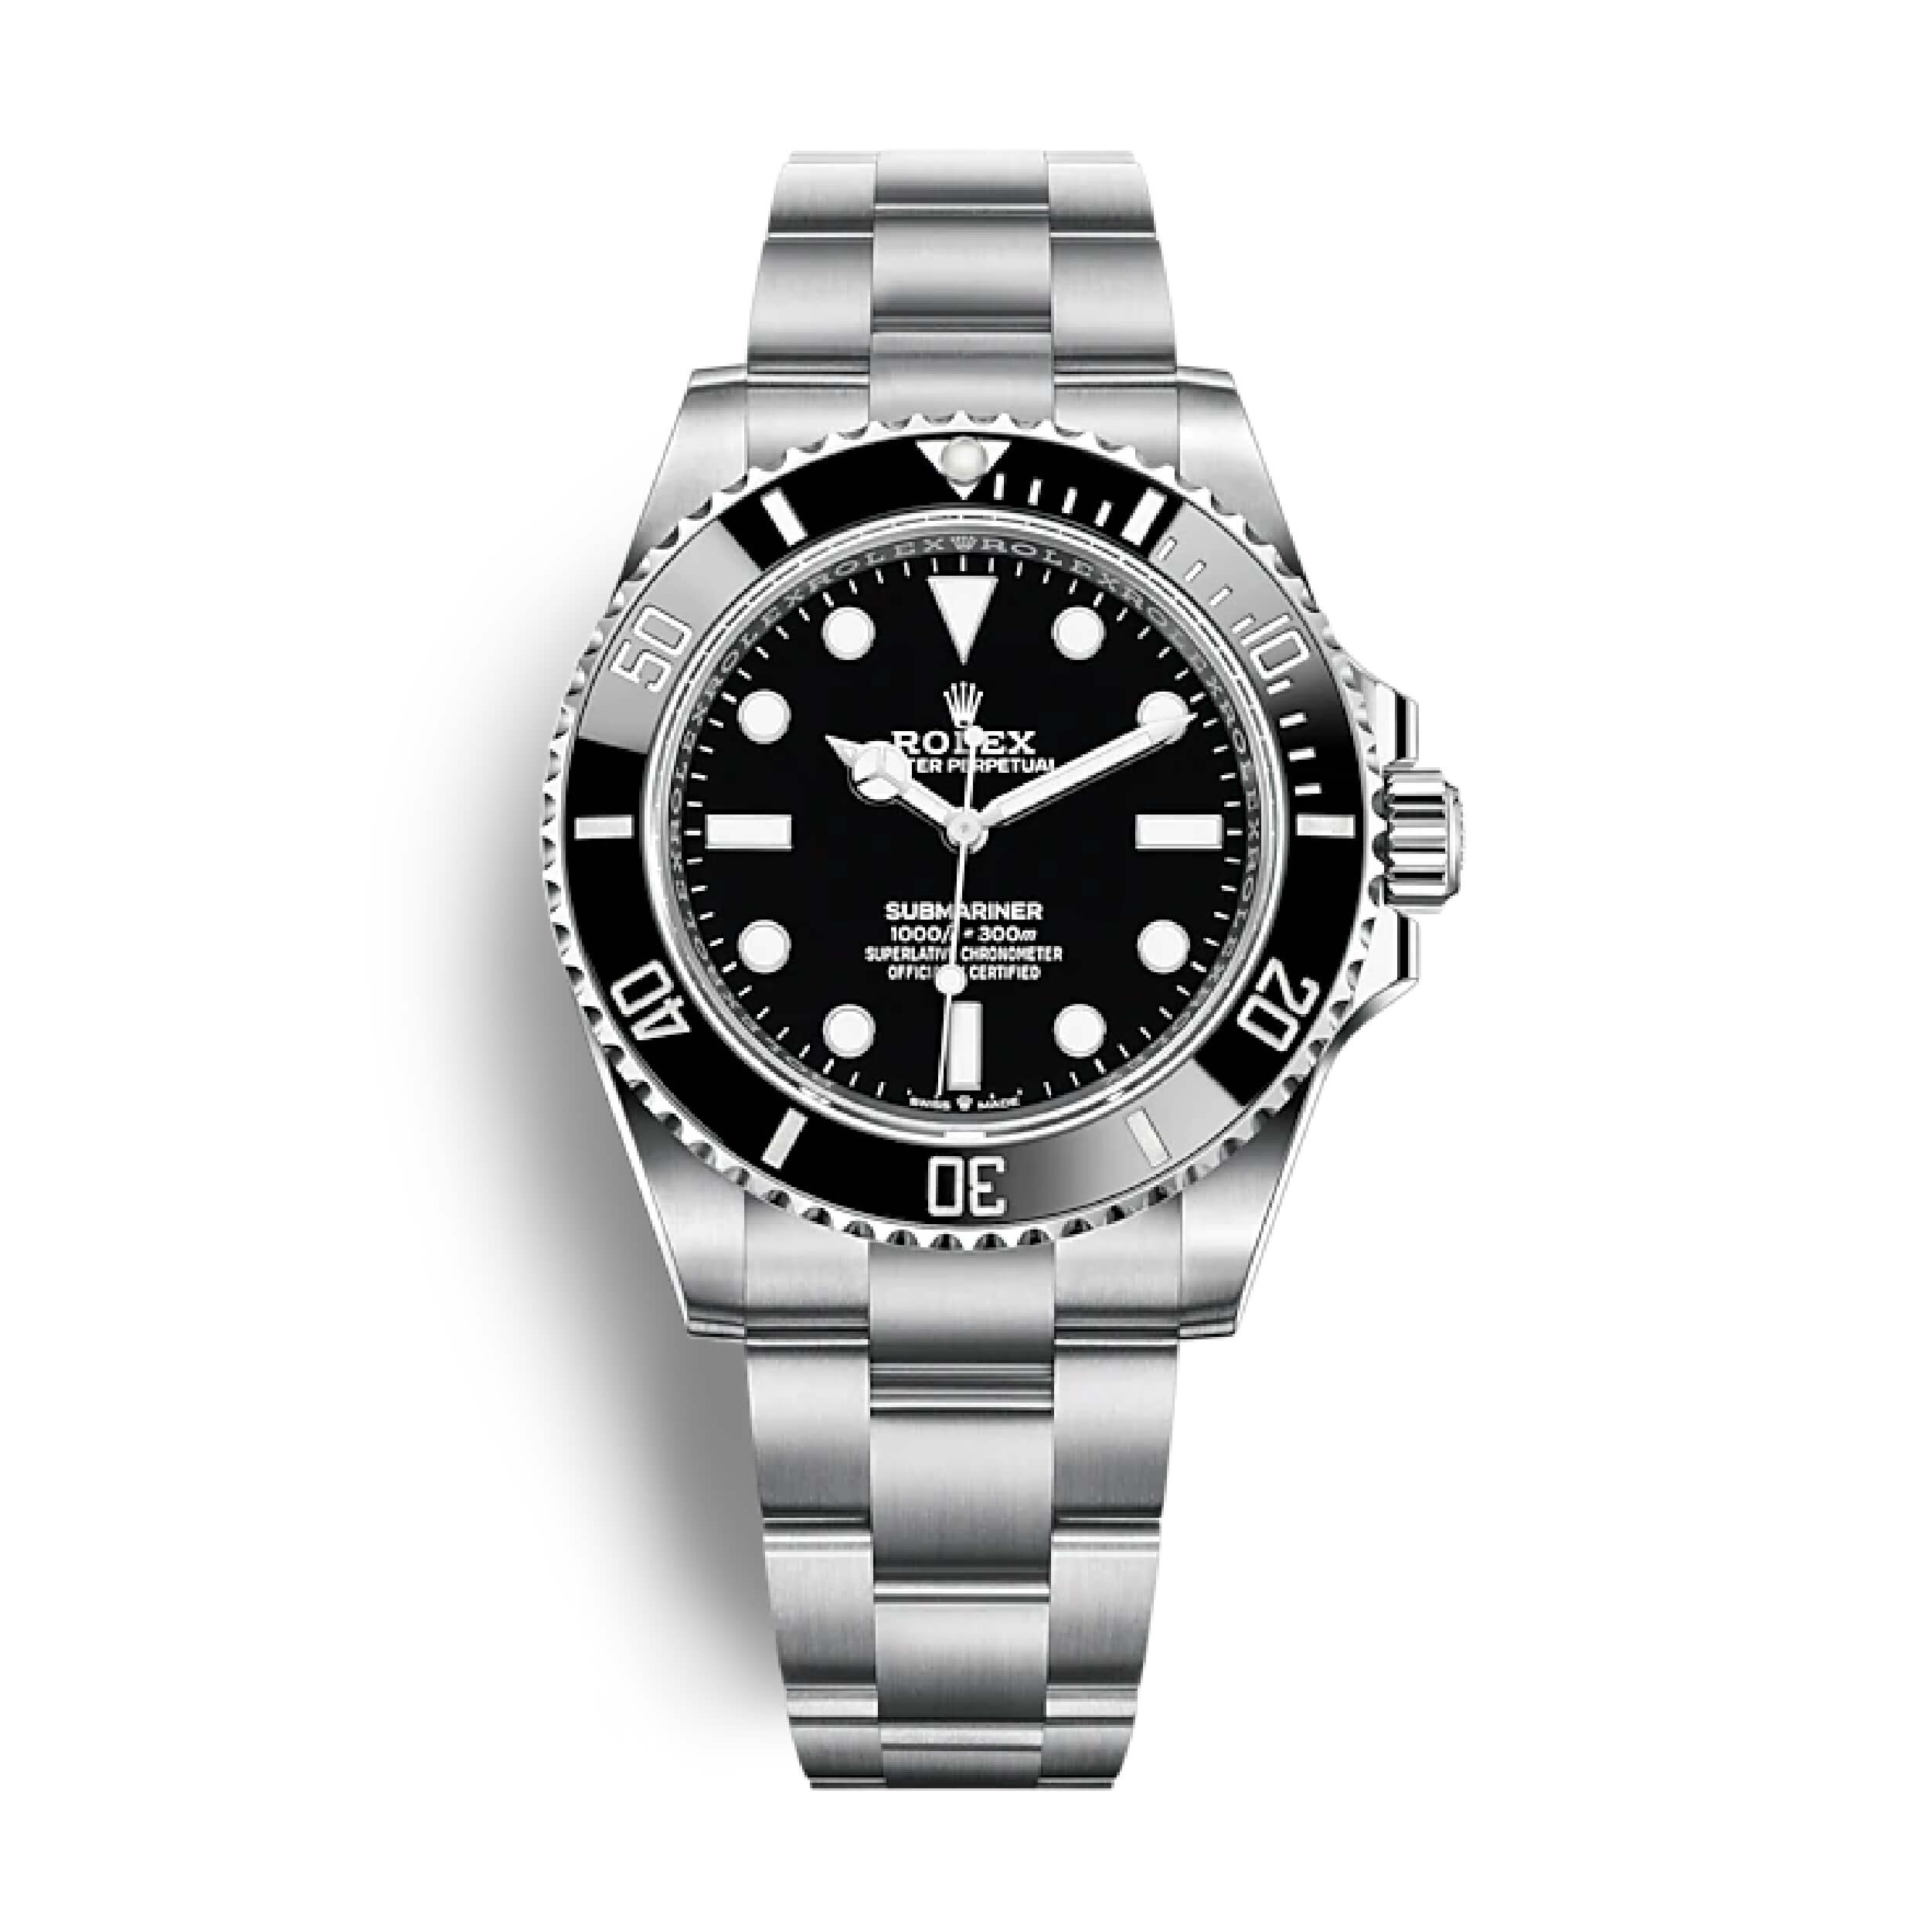 Rolex Submariner No Date Ref 124060 | Best watches under £10000